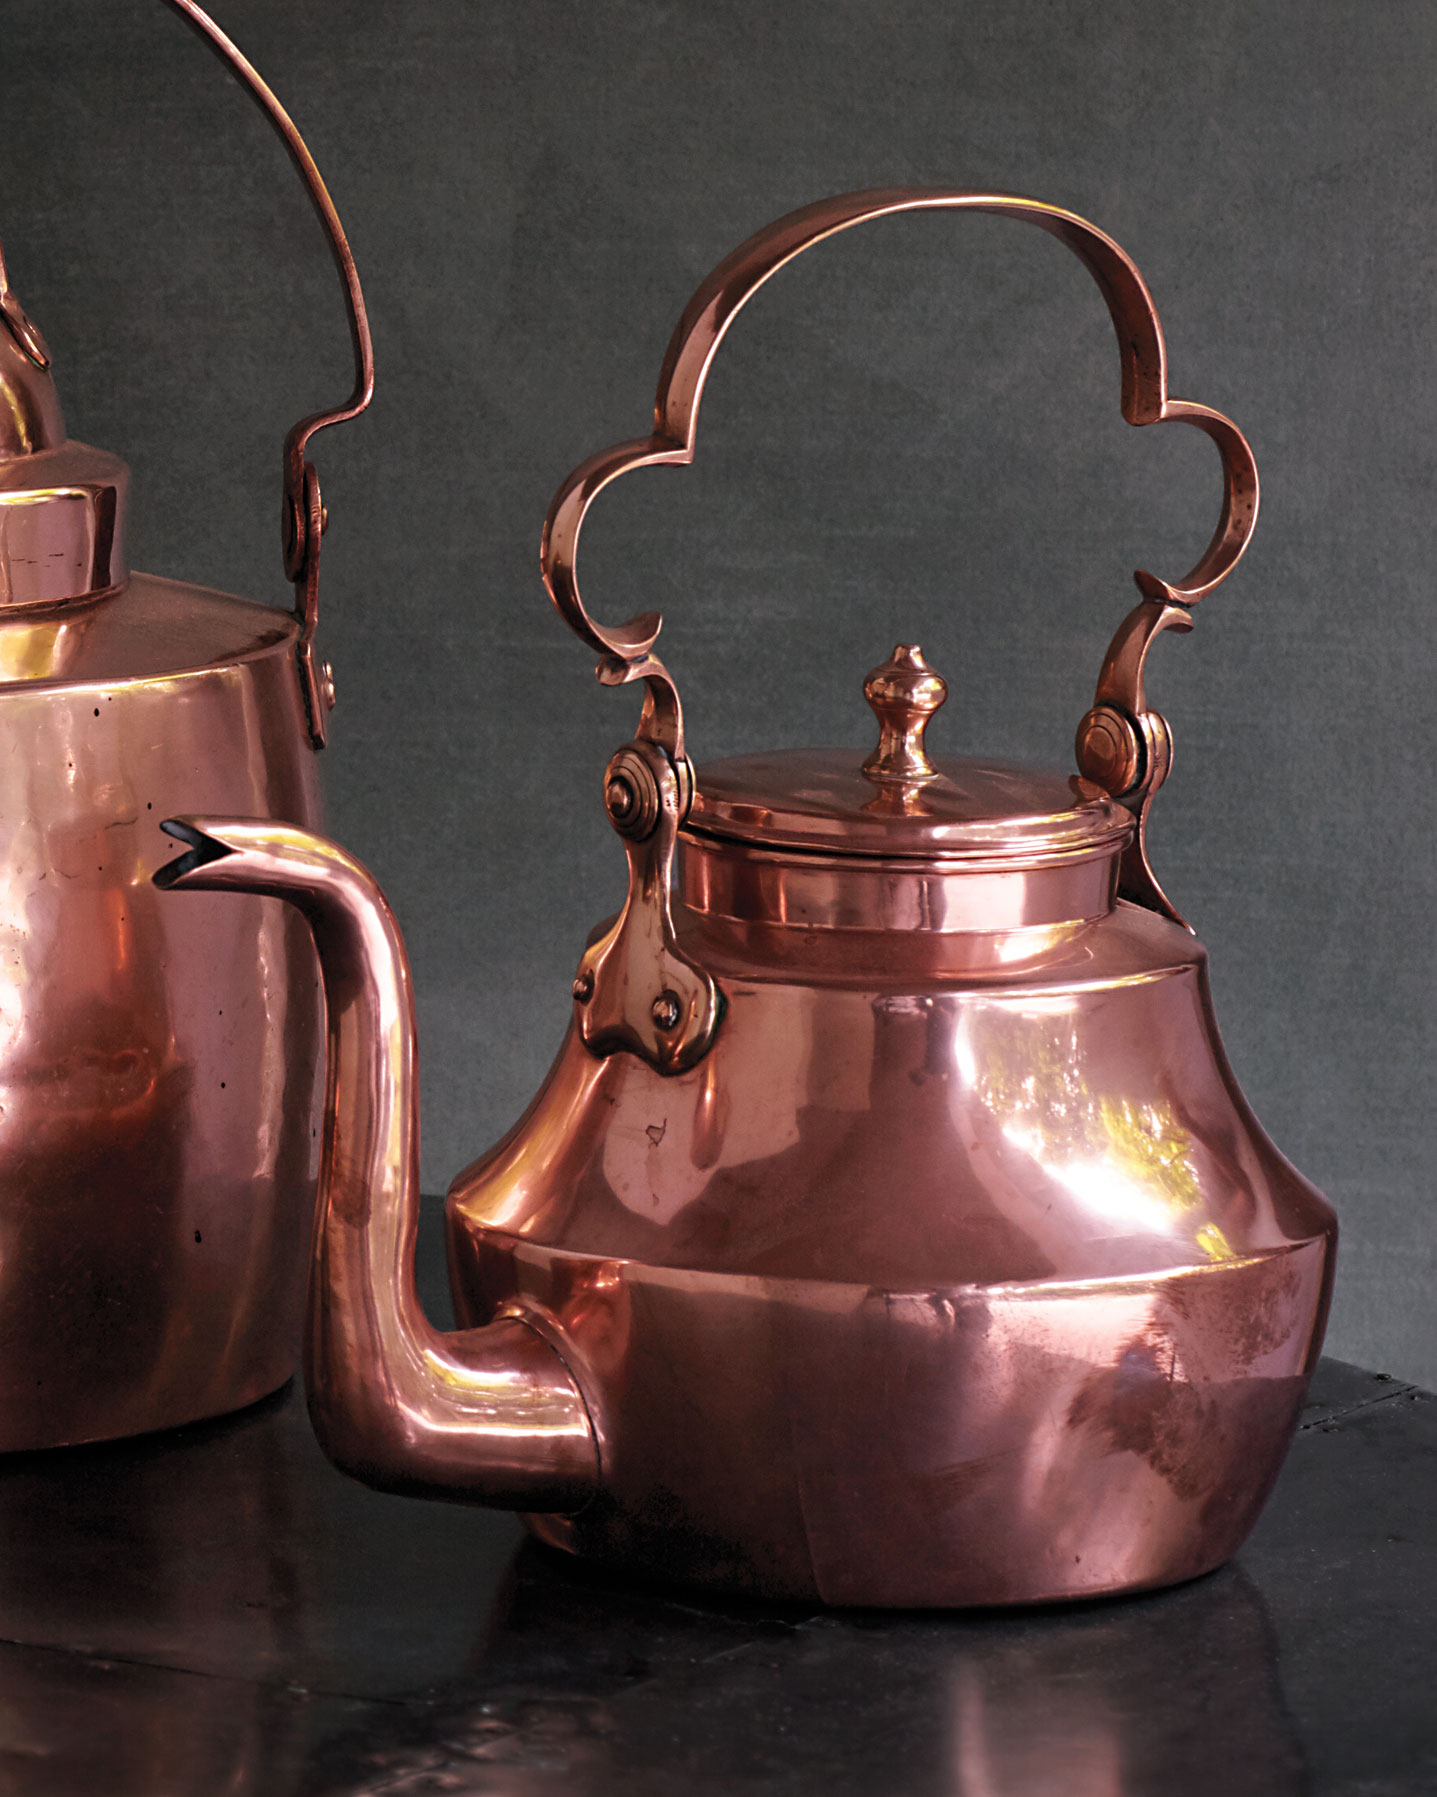 Kettles to Whistle At